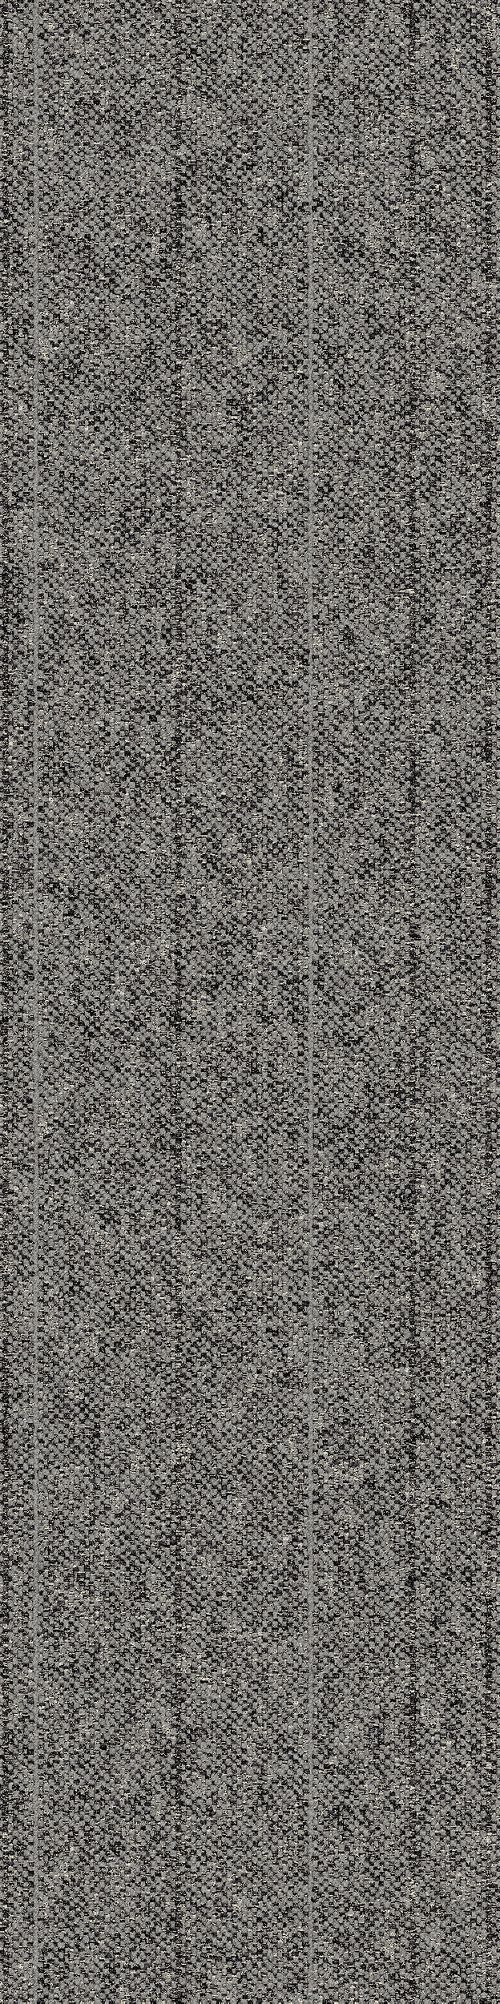 Interface carpet tile: WW860 Color name: Natural Tweed Variant 1